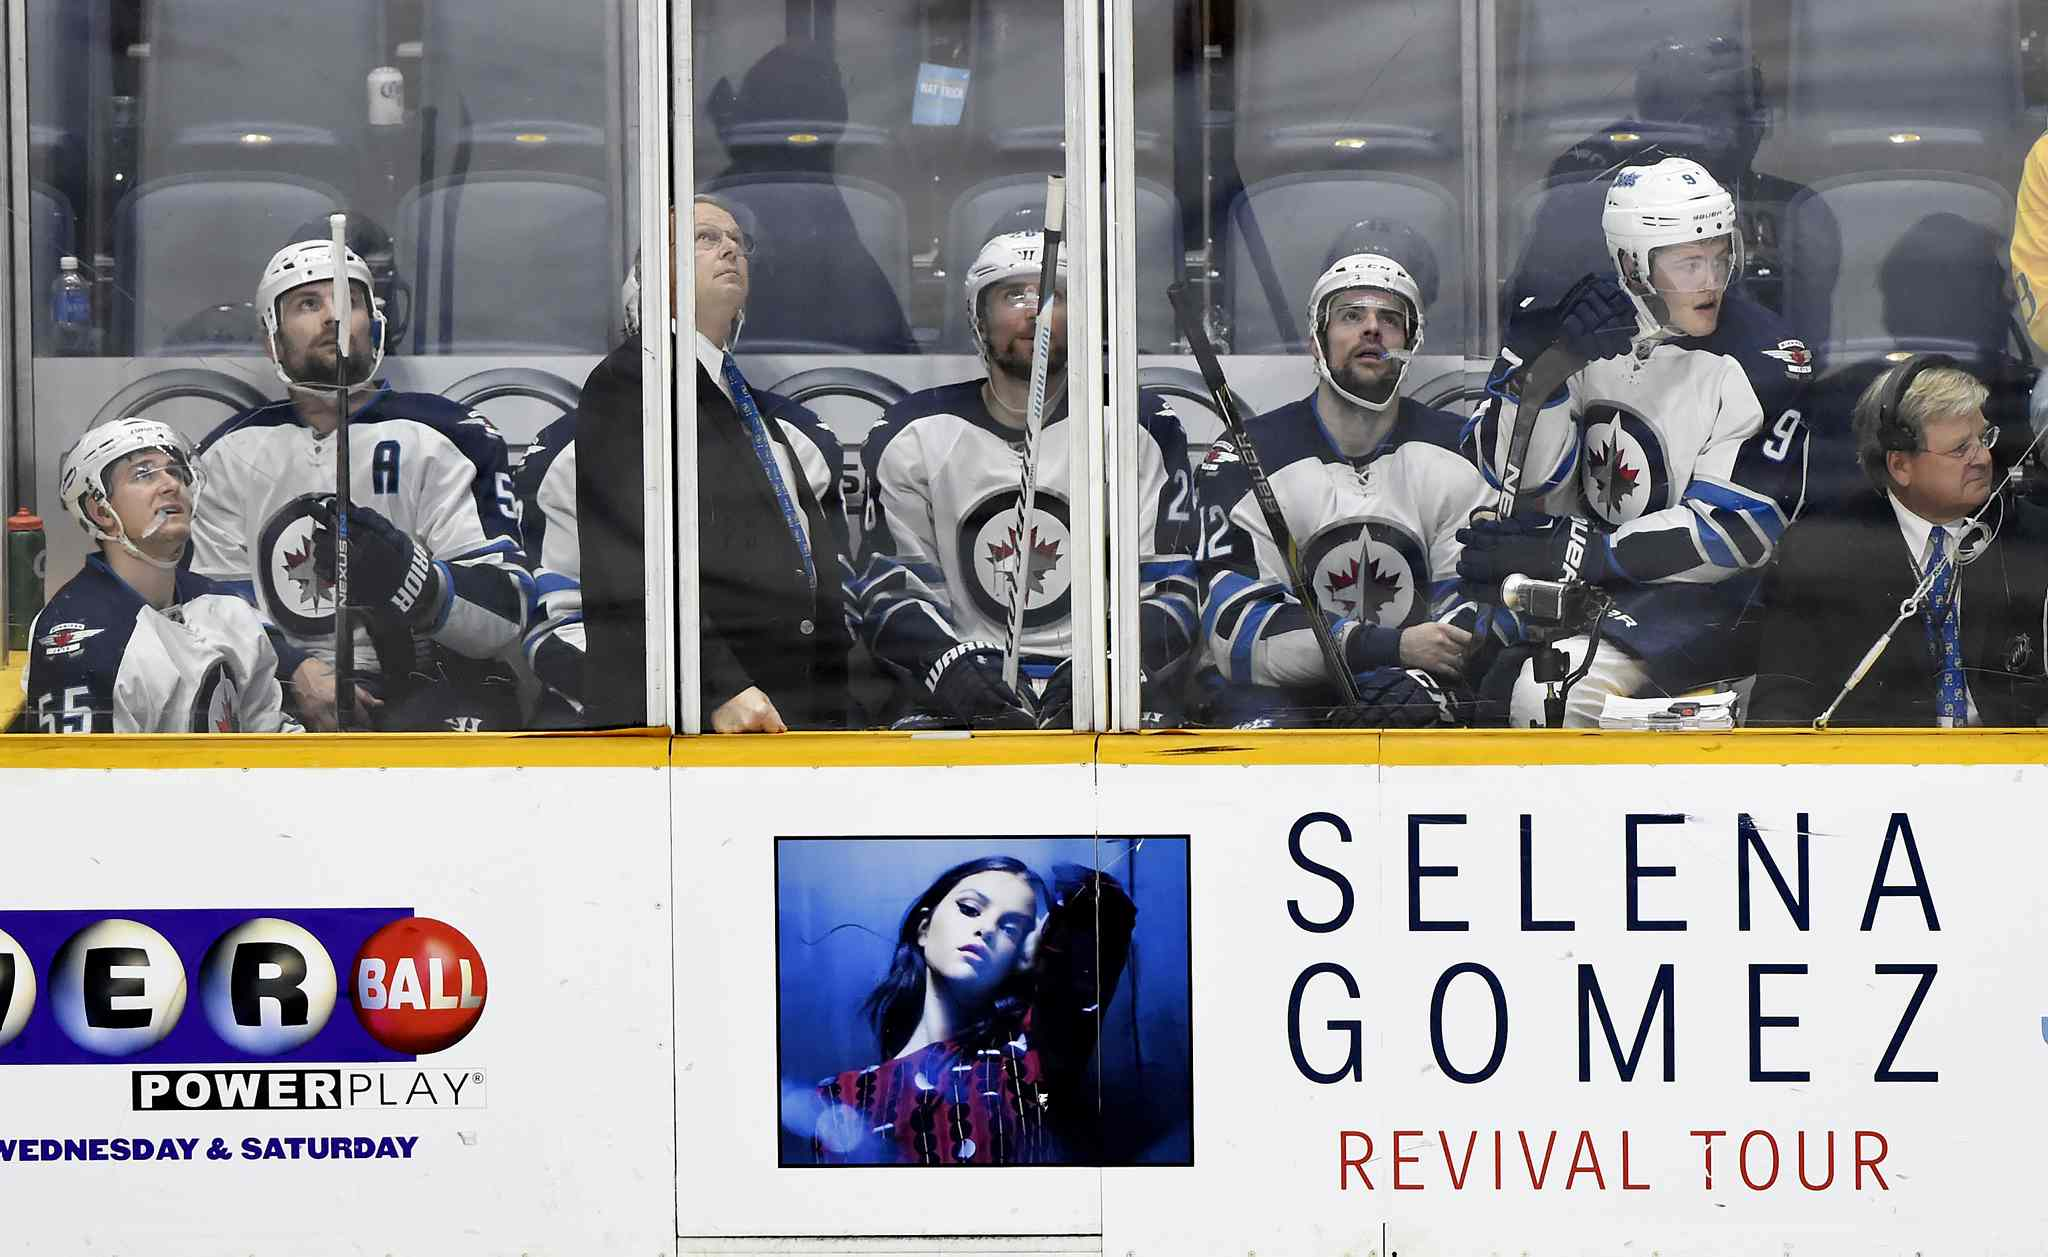 From left, Winnipeg Jets players' Mark Scheifele, Mark Stuart, Jacob Trouba (obscured), Blake Wheeler, Drew Stafford, and Andrew Copp sit in the penalty box during the third period of an NHL hockey game against the Nashville Predators, Saturday, Nov. 14, 2015, in Nashville, Tenn. The Predators won 7-0. (AP Photo/Mark Zaleski)